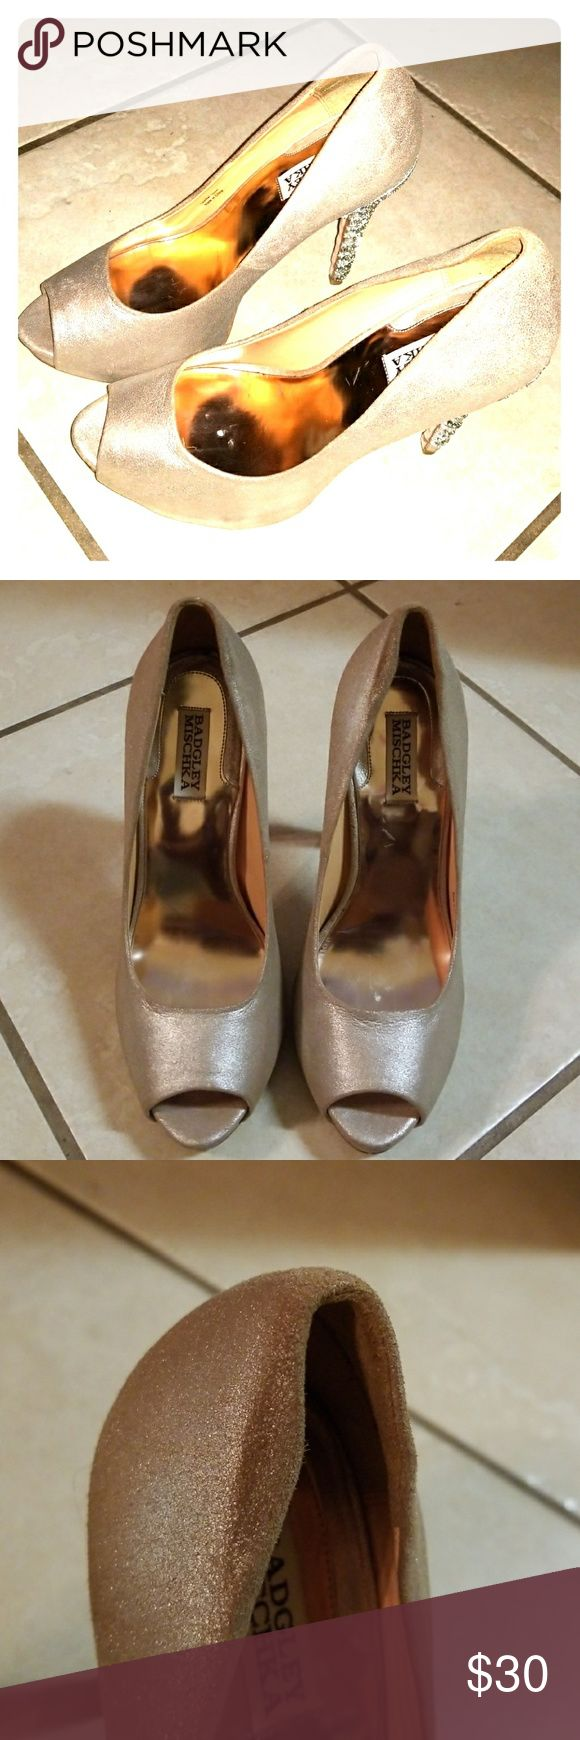 Badgley Mischka Gold Shimmer Silver Heels Badgley Mischka Gold Shimmer Silver Embellished Diamond Peep Toe Heels. I bought them at Nordstoms Last Chance store  for $49.99. Beautiful used shoes that I cannot wear due to a recent back injury. My loss is your gain. Leather shoes, soft and ultra comfortable. Soles have cushion.  They are used shoes. Asking $30 obo. Shoes sold new for $199.00 Badgley Mischka Shoes Heels